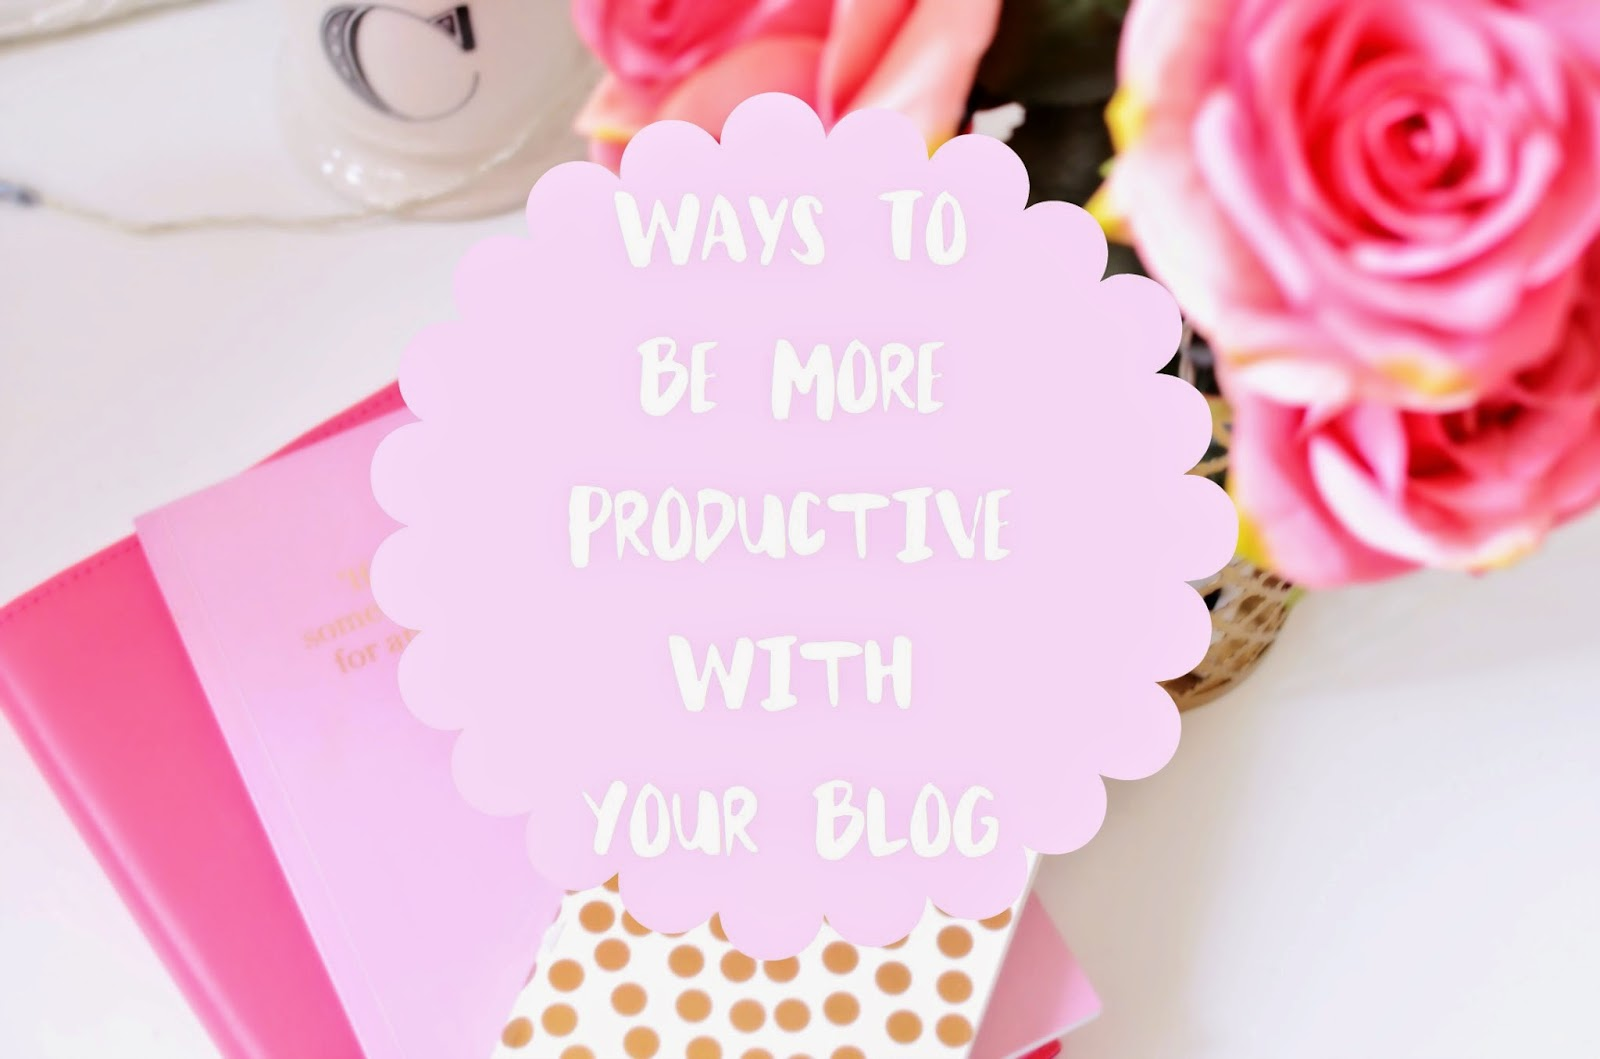 blogging, how to blog, how to be a productive blogger, blog advice, how to be a blogger, how to be organised, how to be an organised blogger